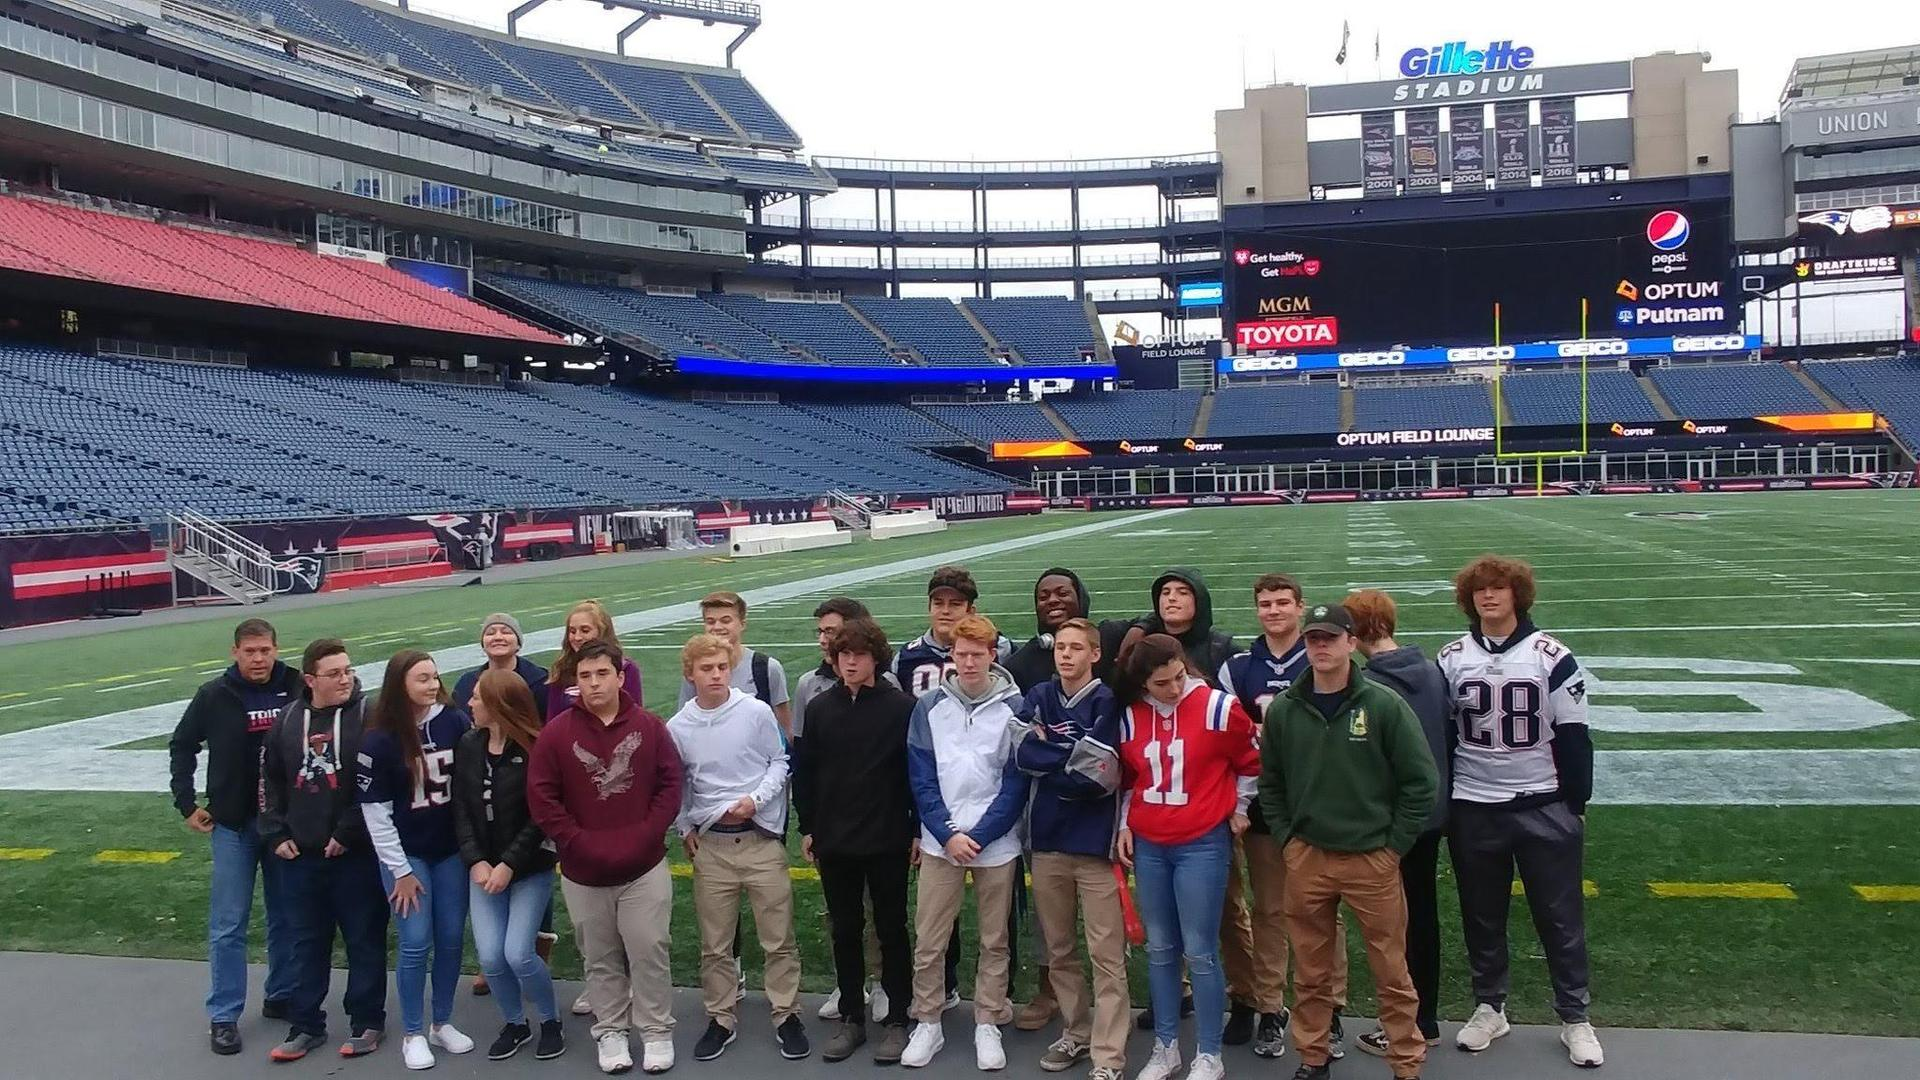 Group of marketing students at Gillette Stadium